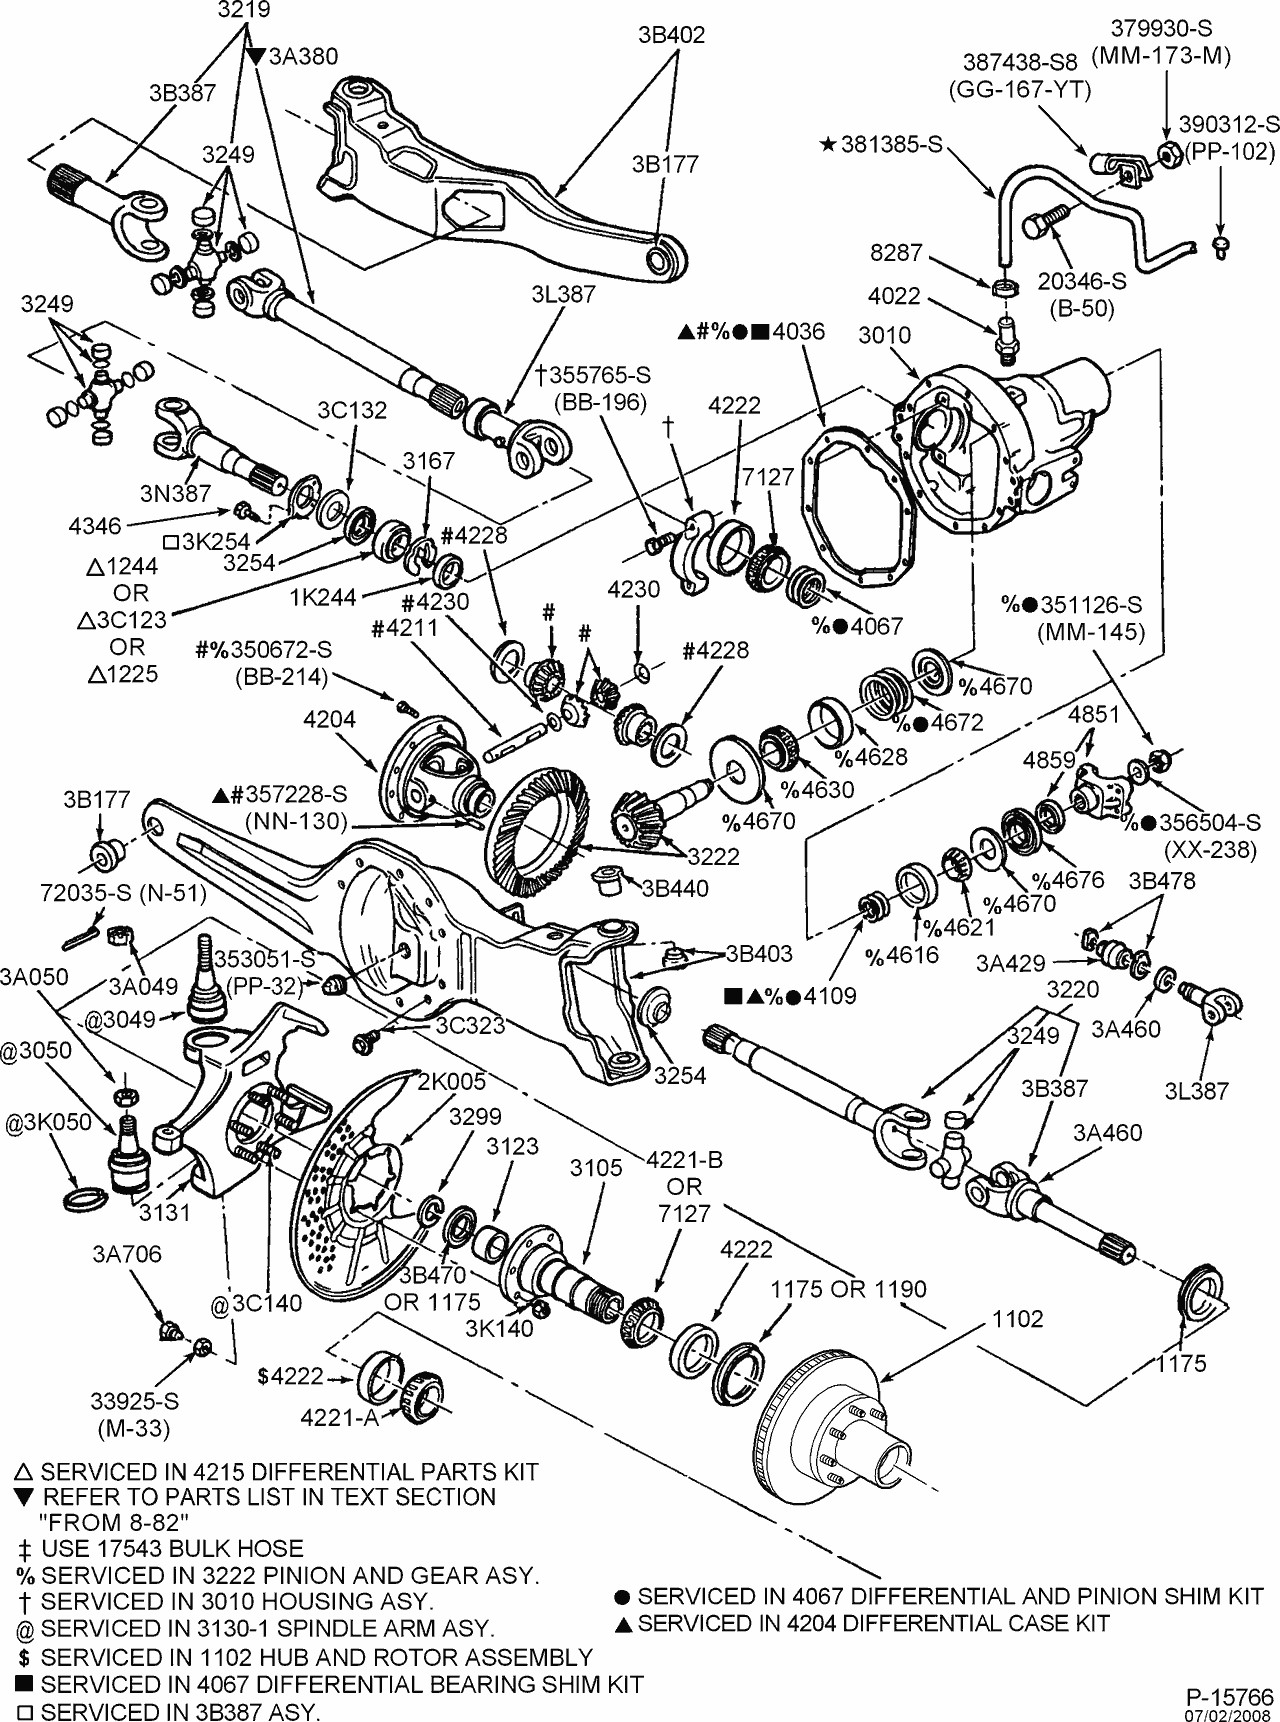 Front End Suspension Parts Diagram ford F350 Rear End Diagram Wiring Diagram Used Of Front End Suspension Parts Diagram